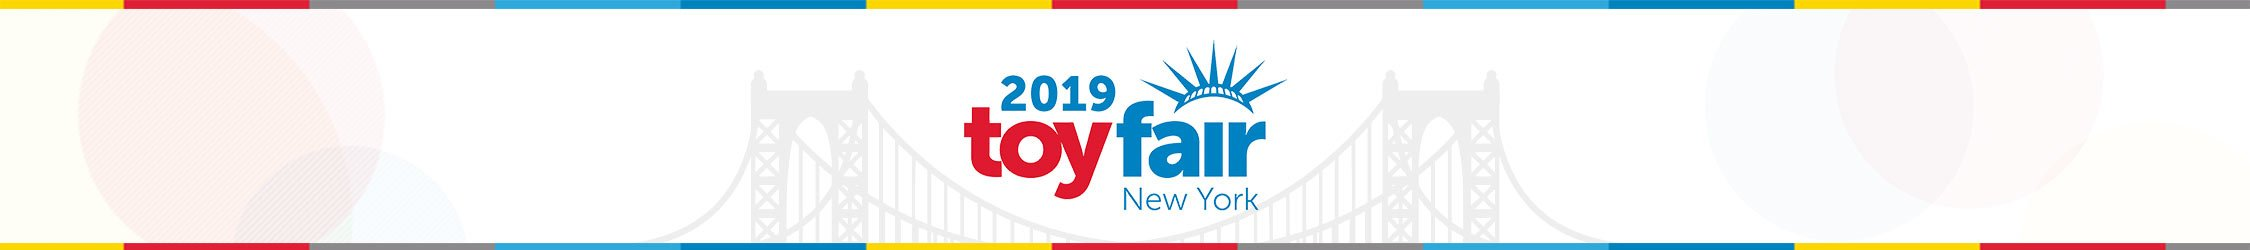 New York Toy Fair 2019